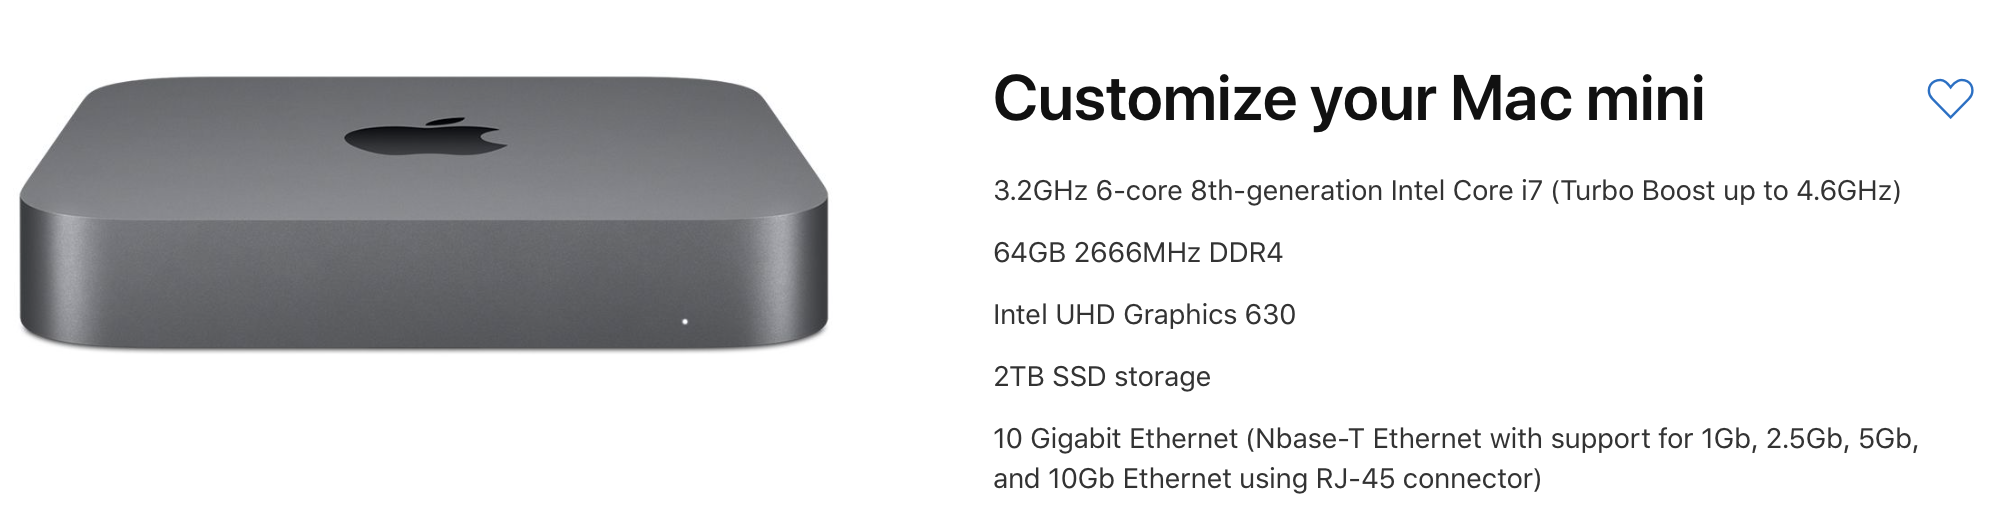 New Maxed Out Ipad Pro Hits 1900 Mac Mini Up To 4200 Macbook Air